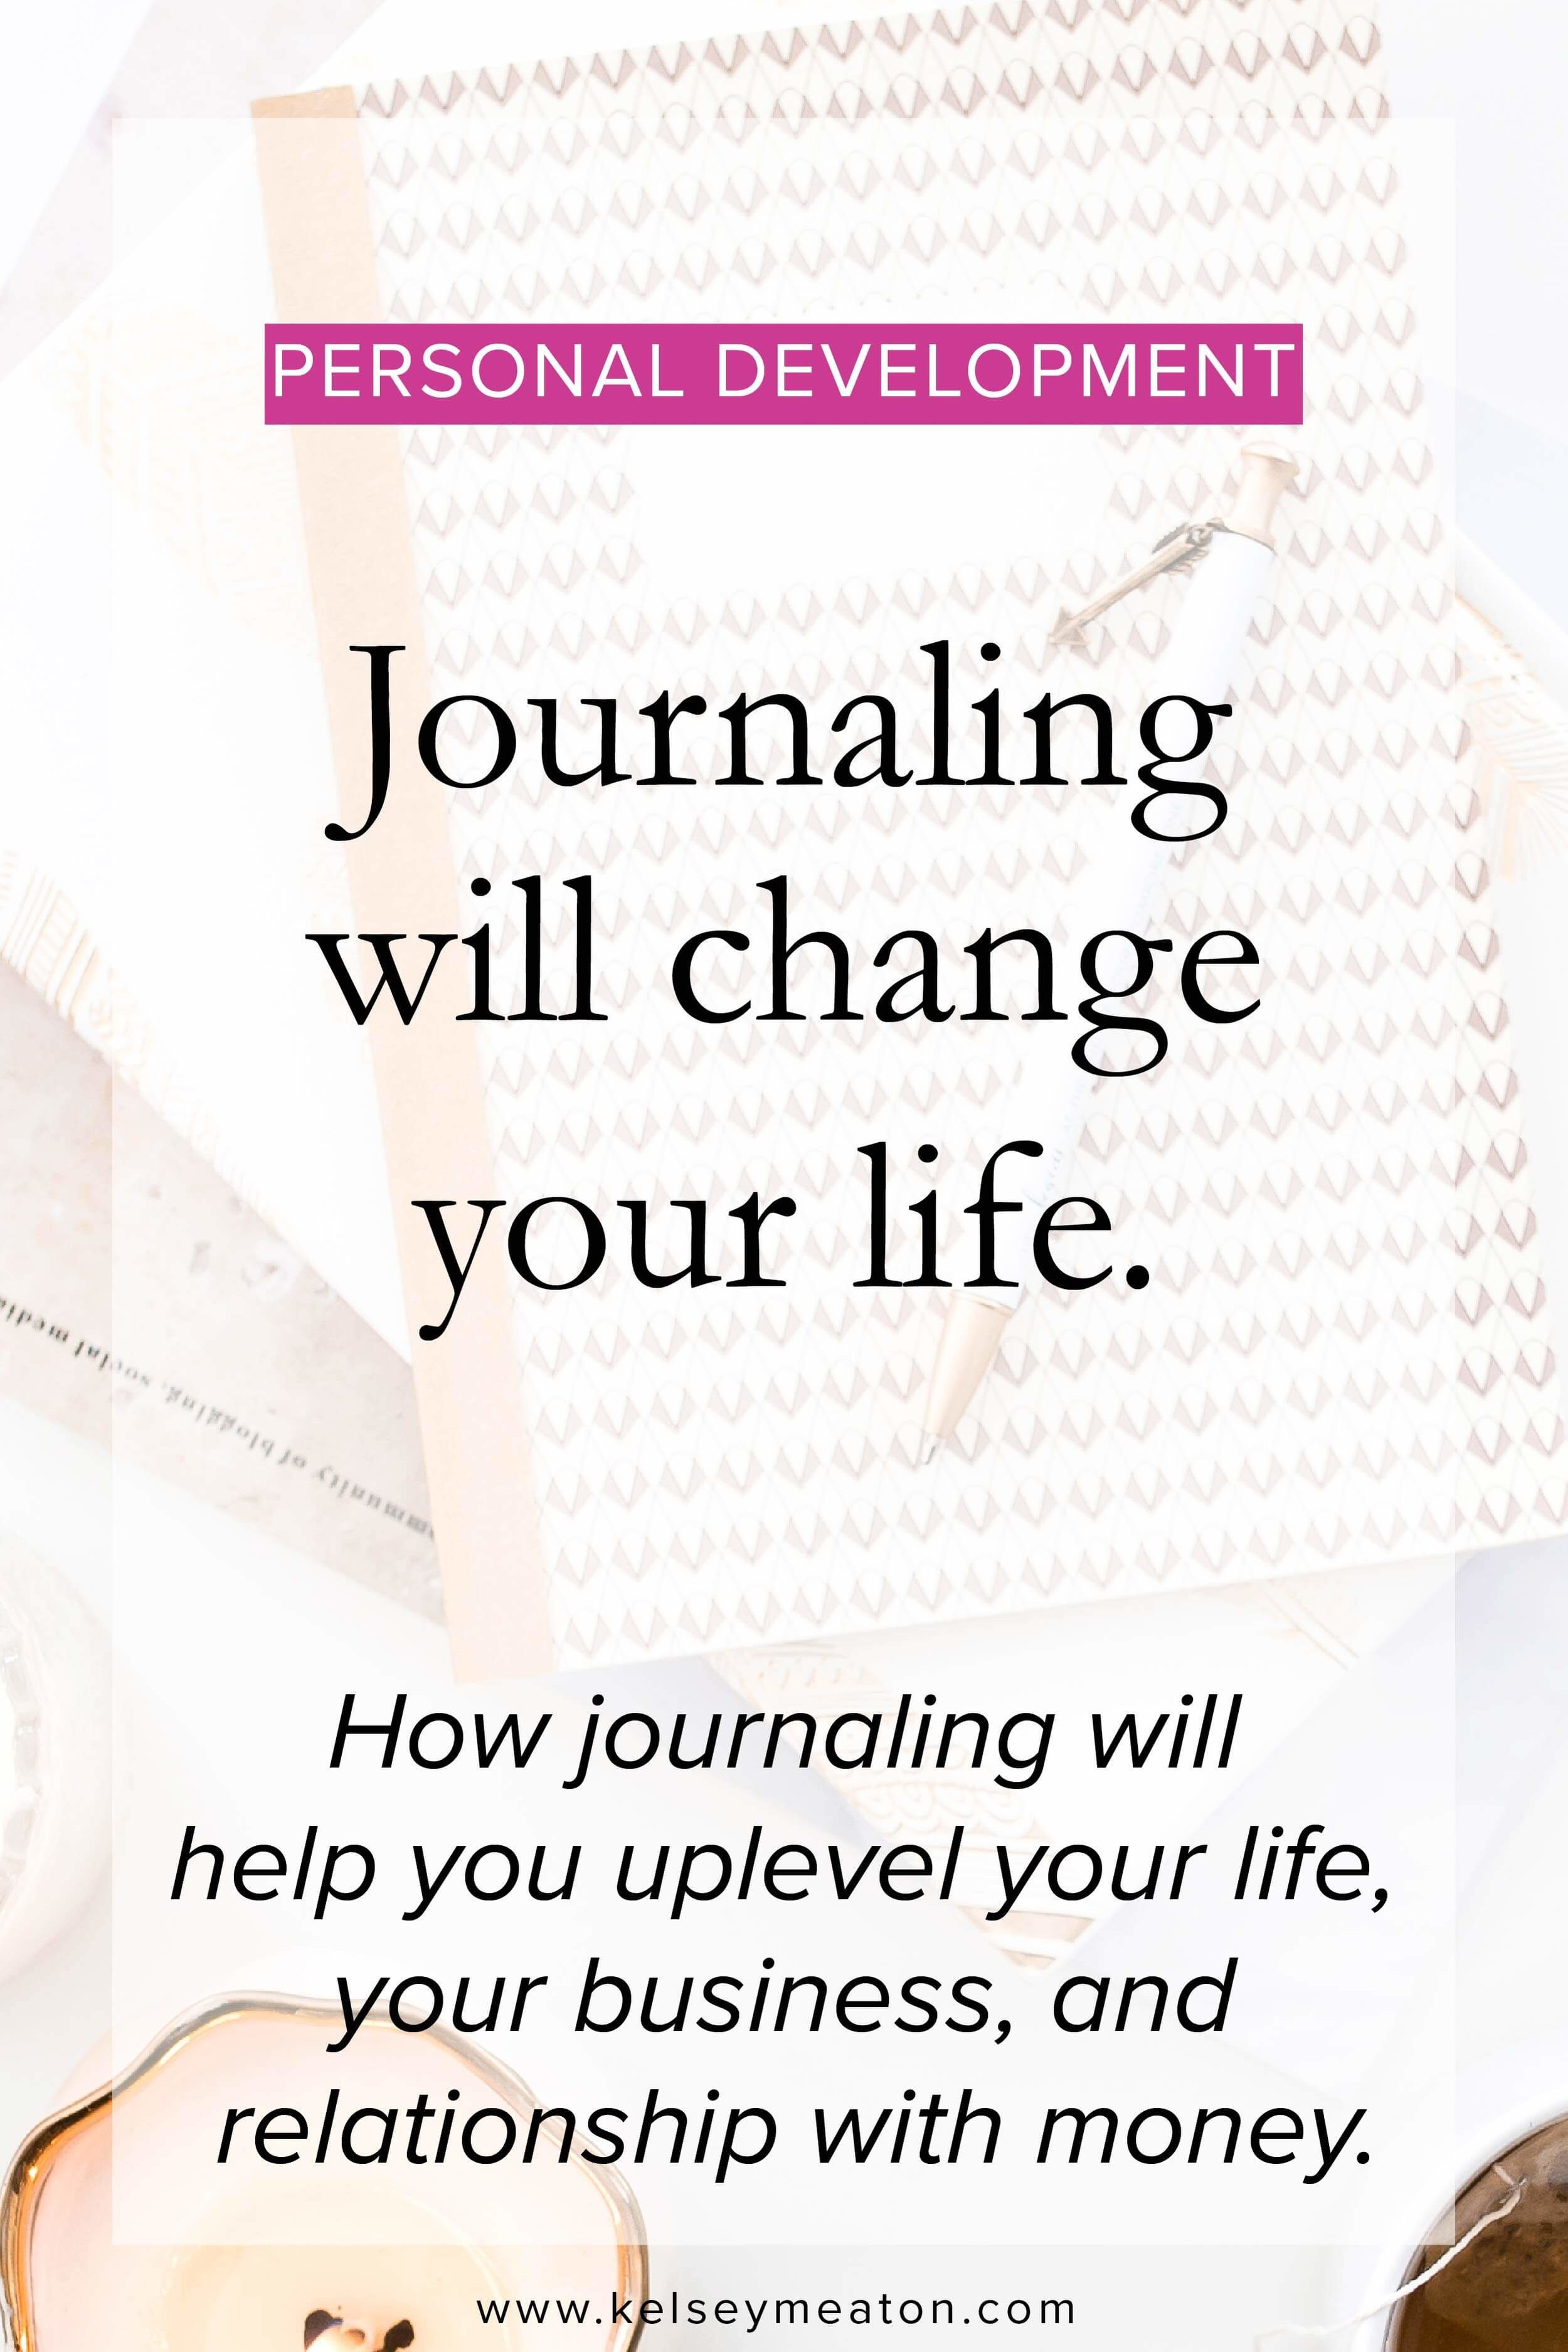 Journaling will change your life.